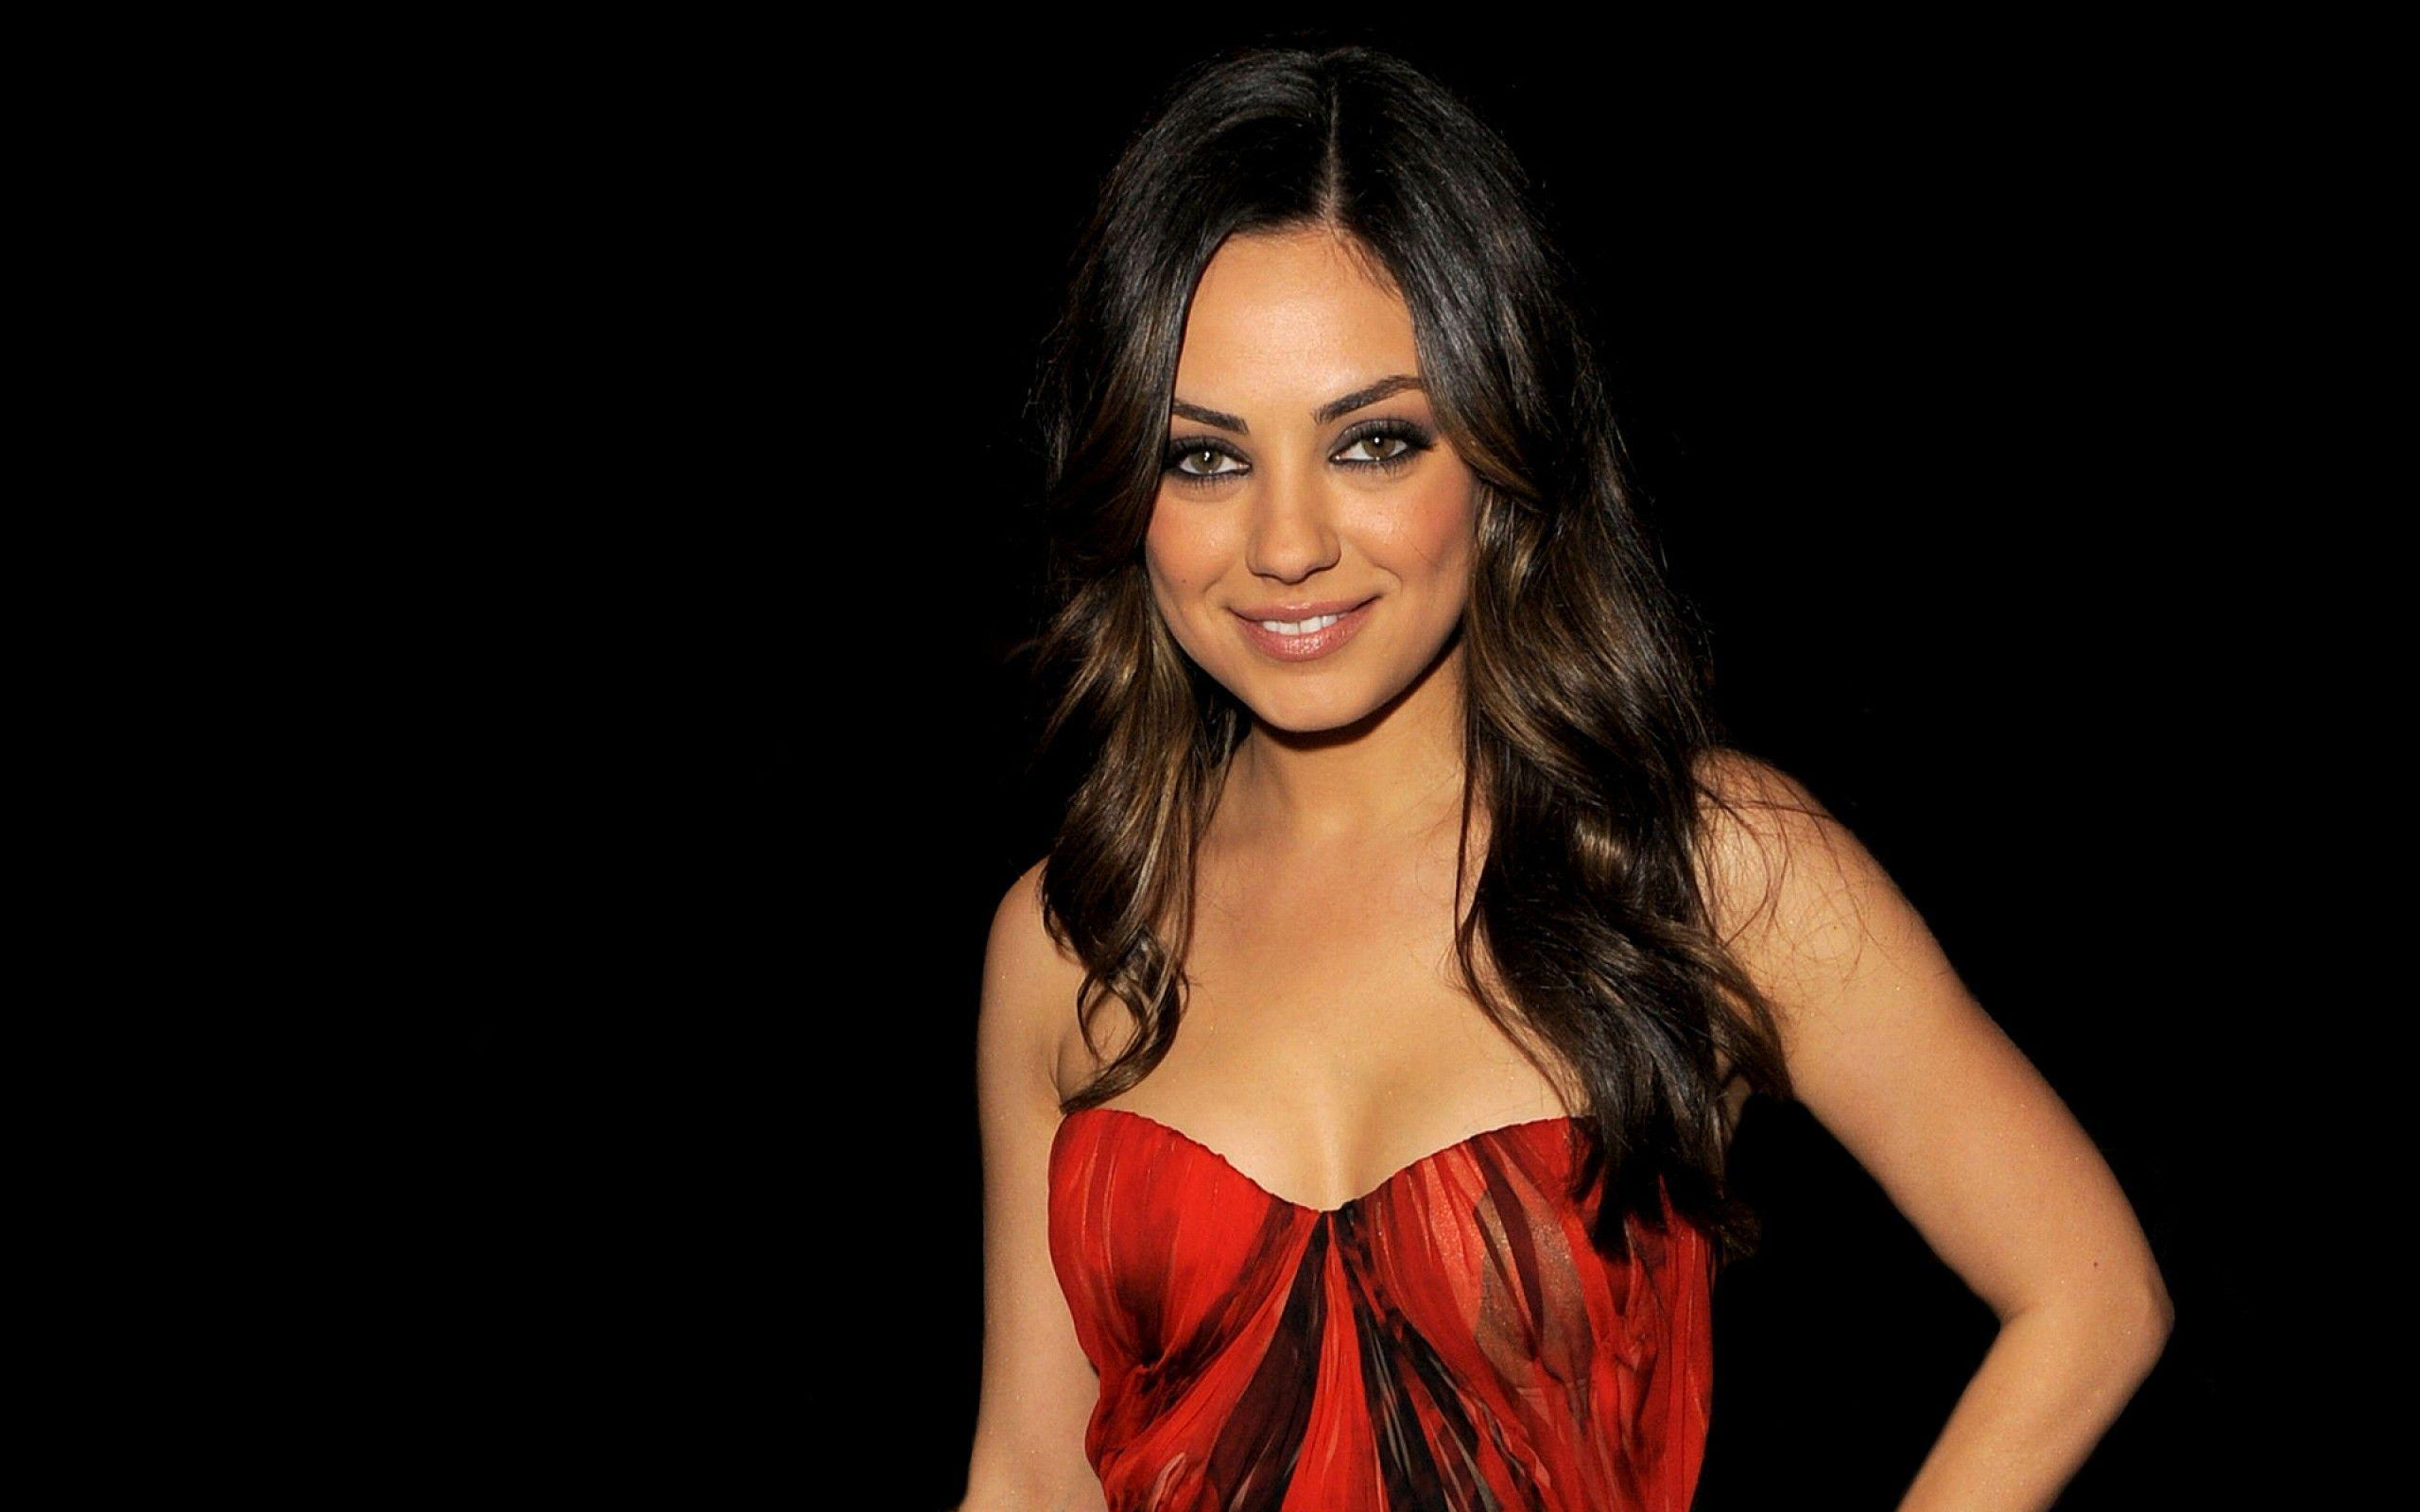 Image For > Mila Kunis Beautiful Wallpapers